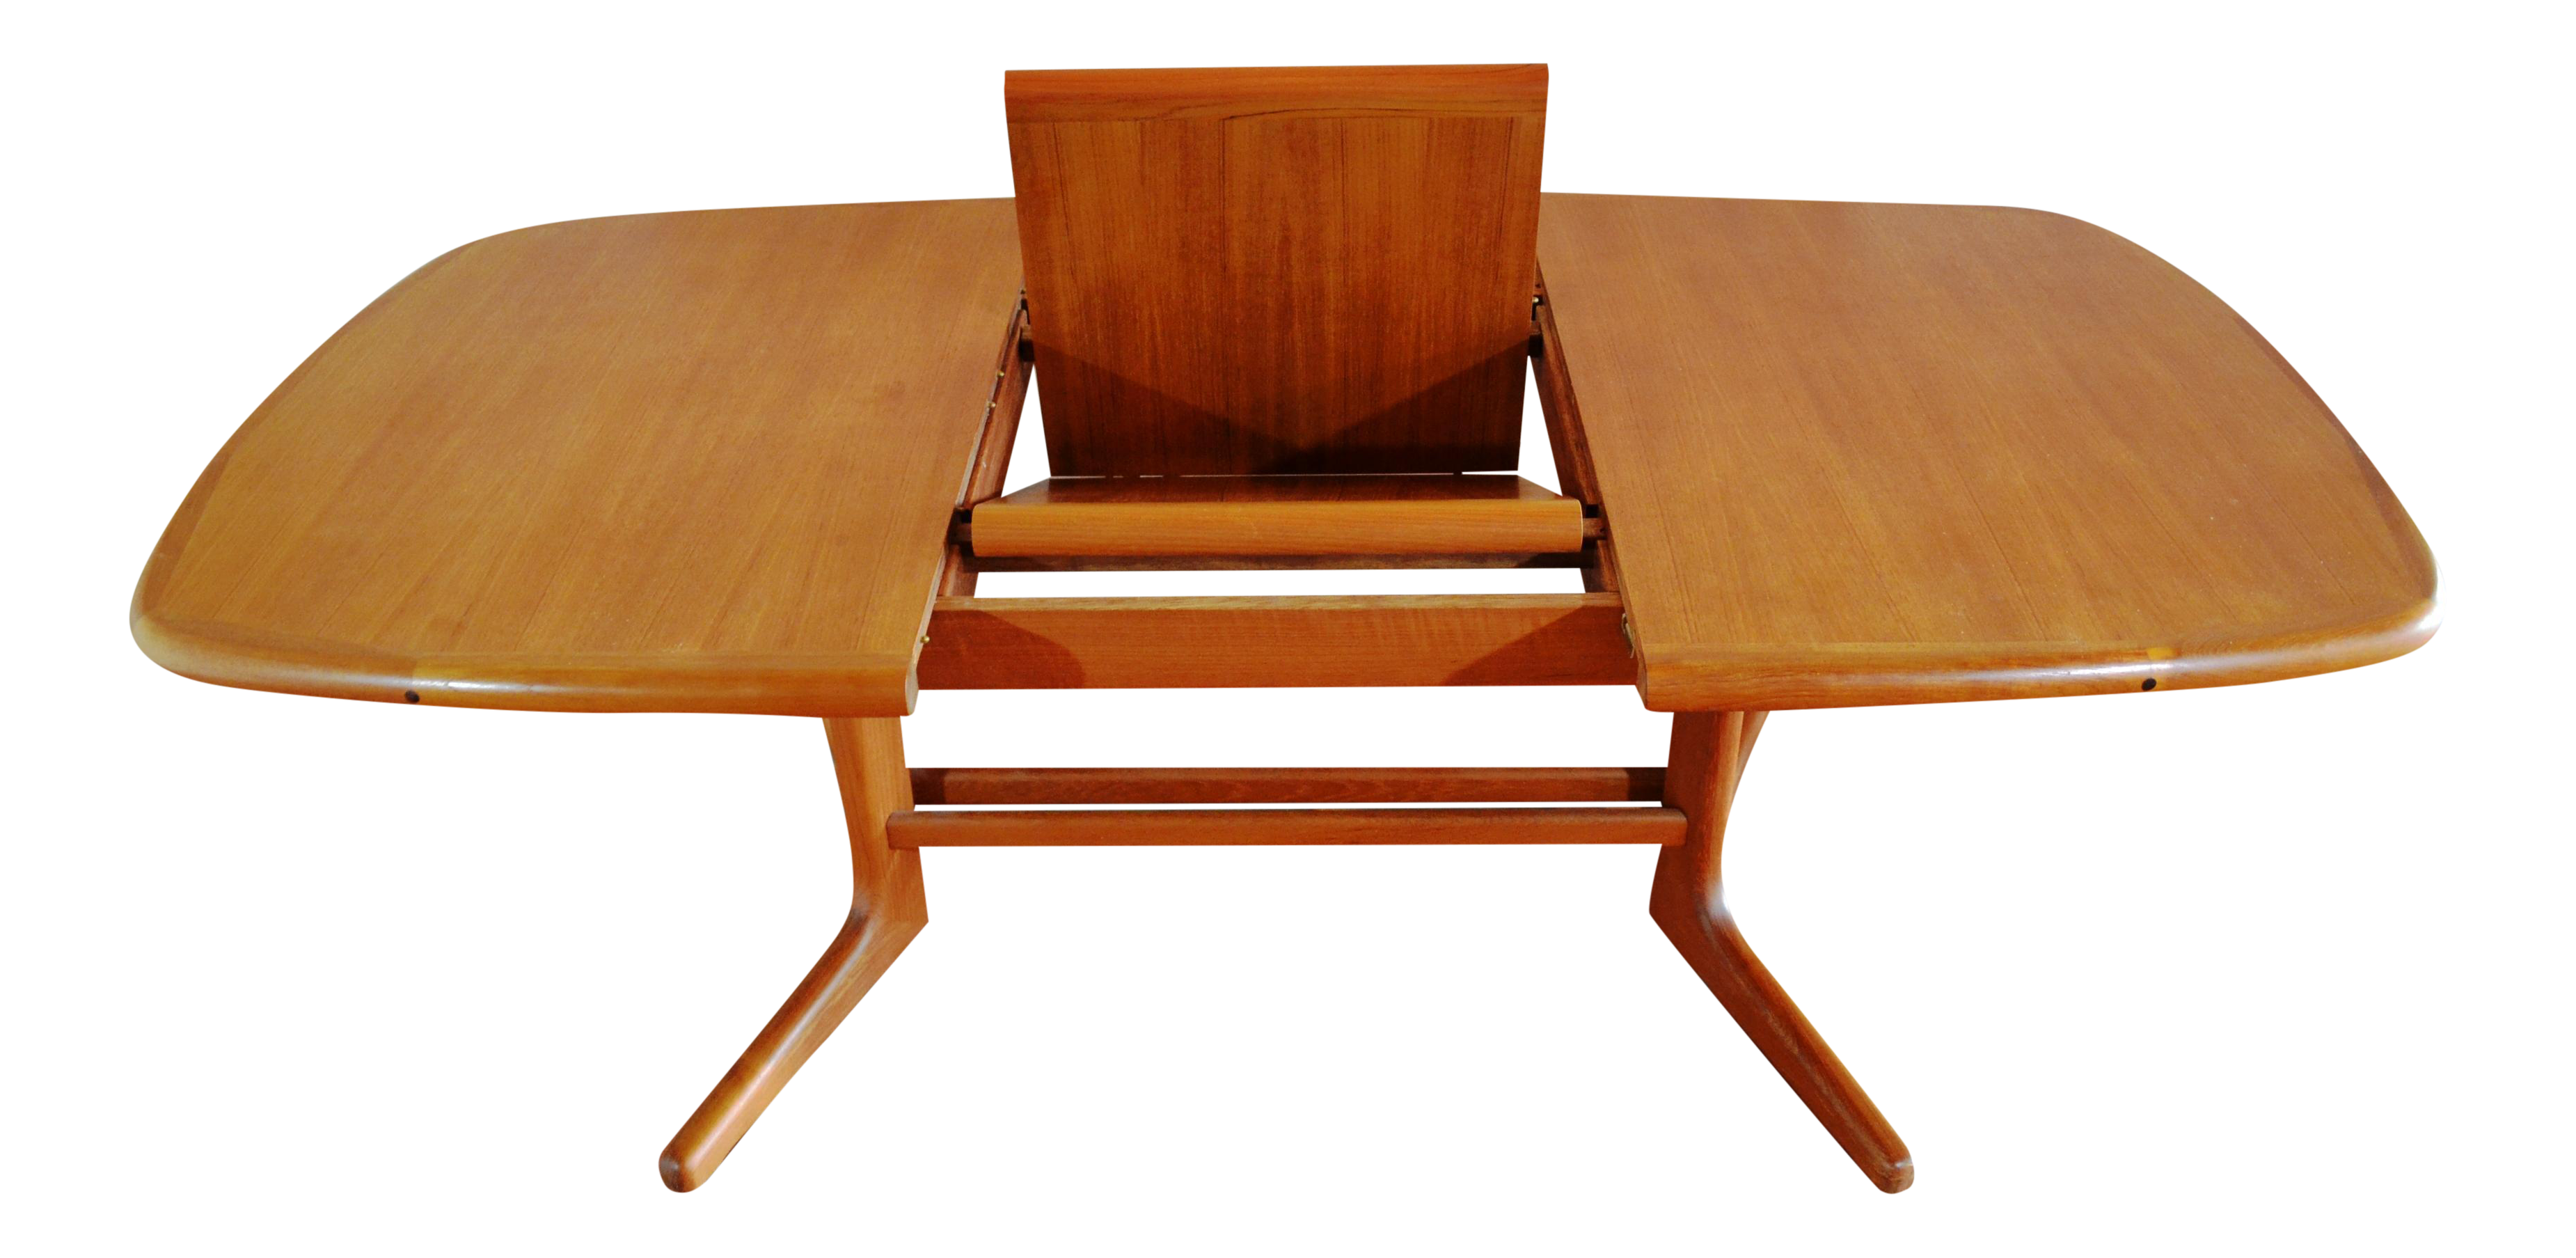 Danish Modern Teak Butterfly Dining Table Chairish - Teak dining table with leaf